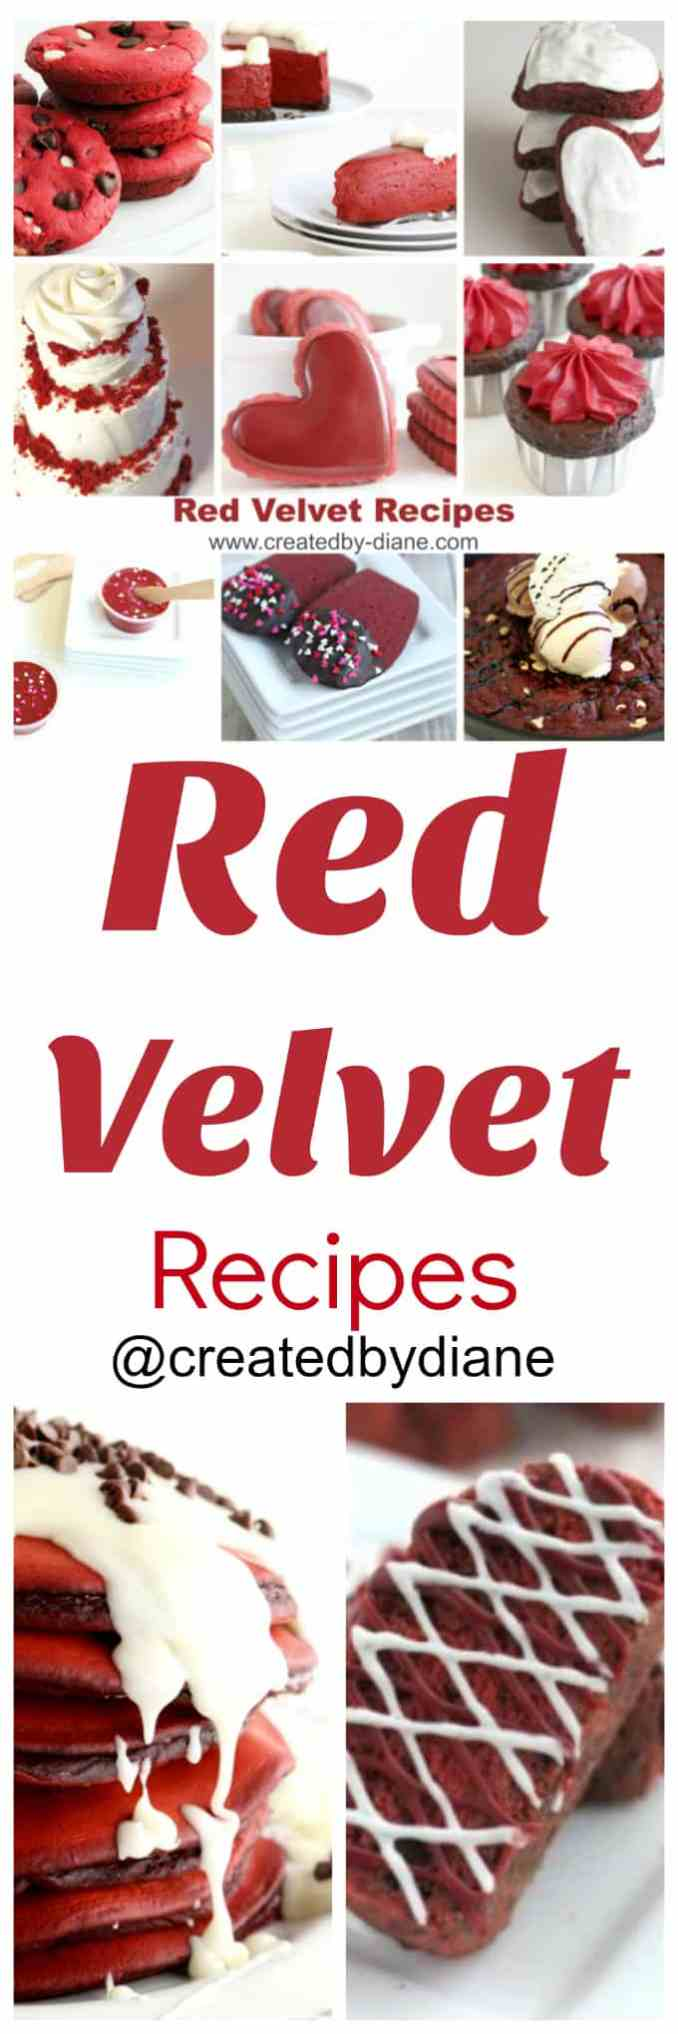 red velvet recipes | Created by Diane